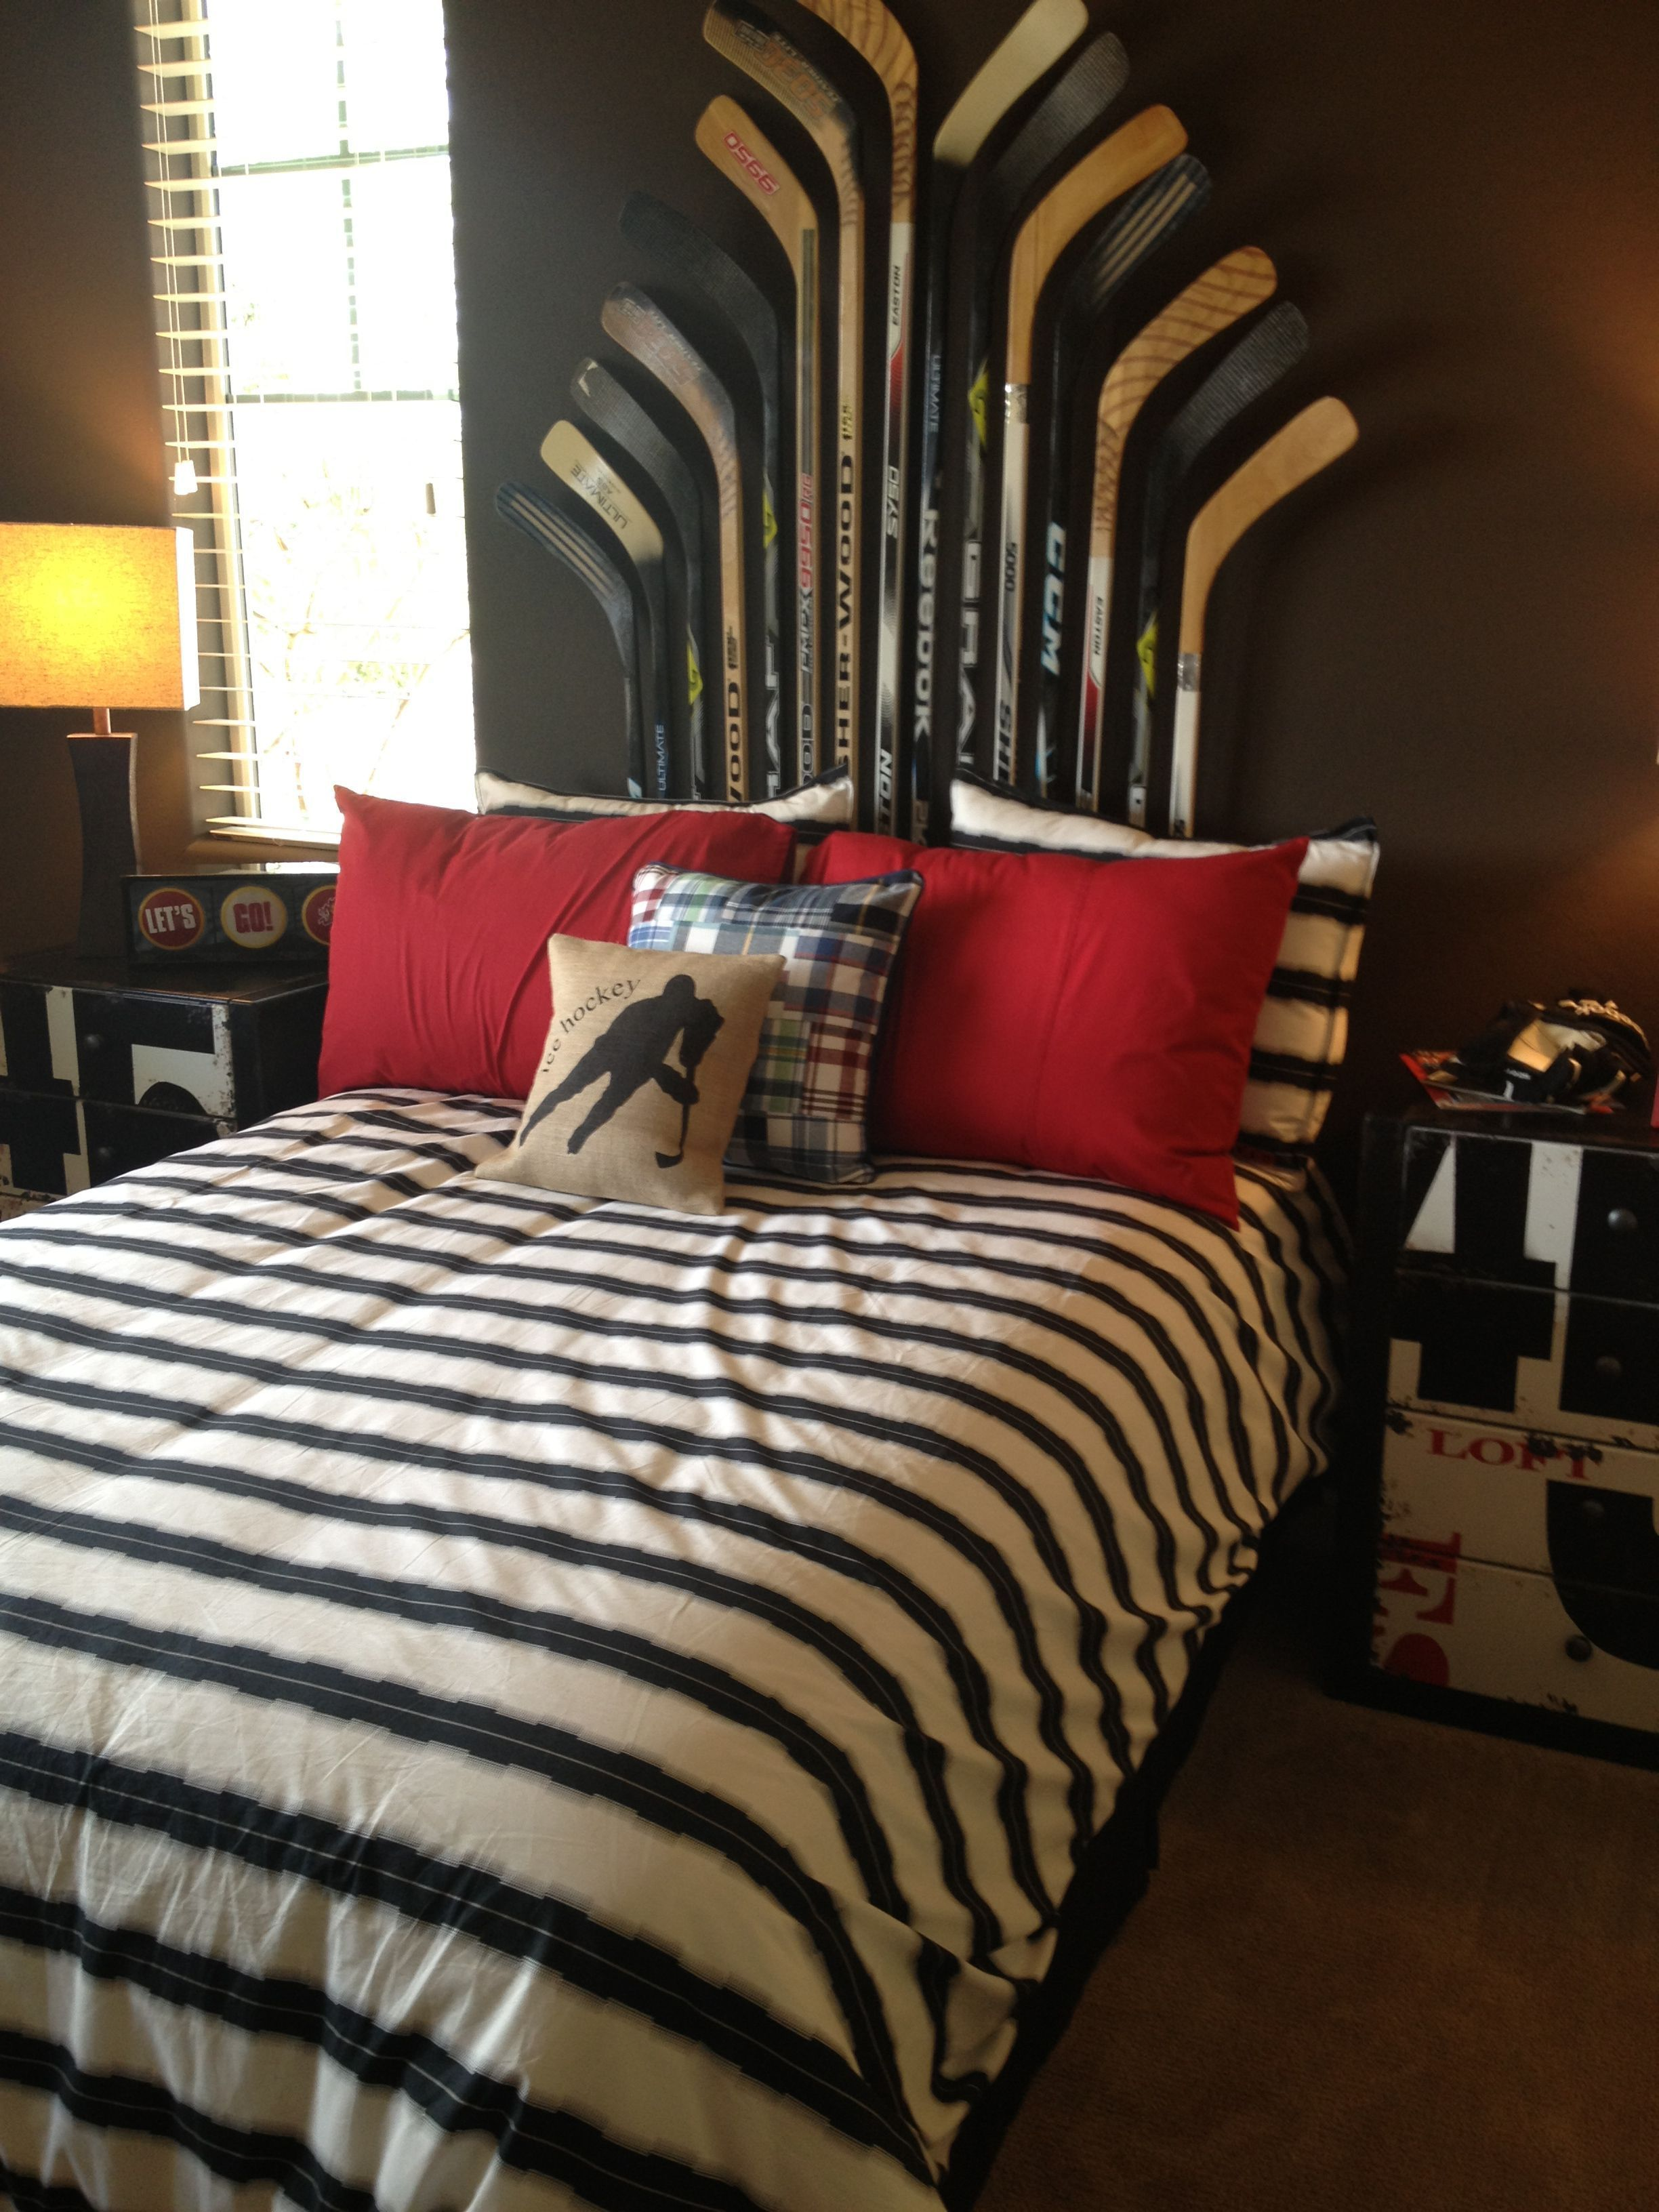 55 fun and cool teen bedroom ideas you want steal for yourself rh pinterest com